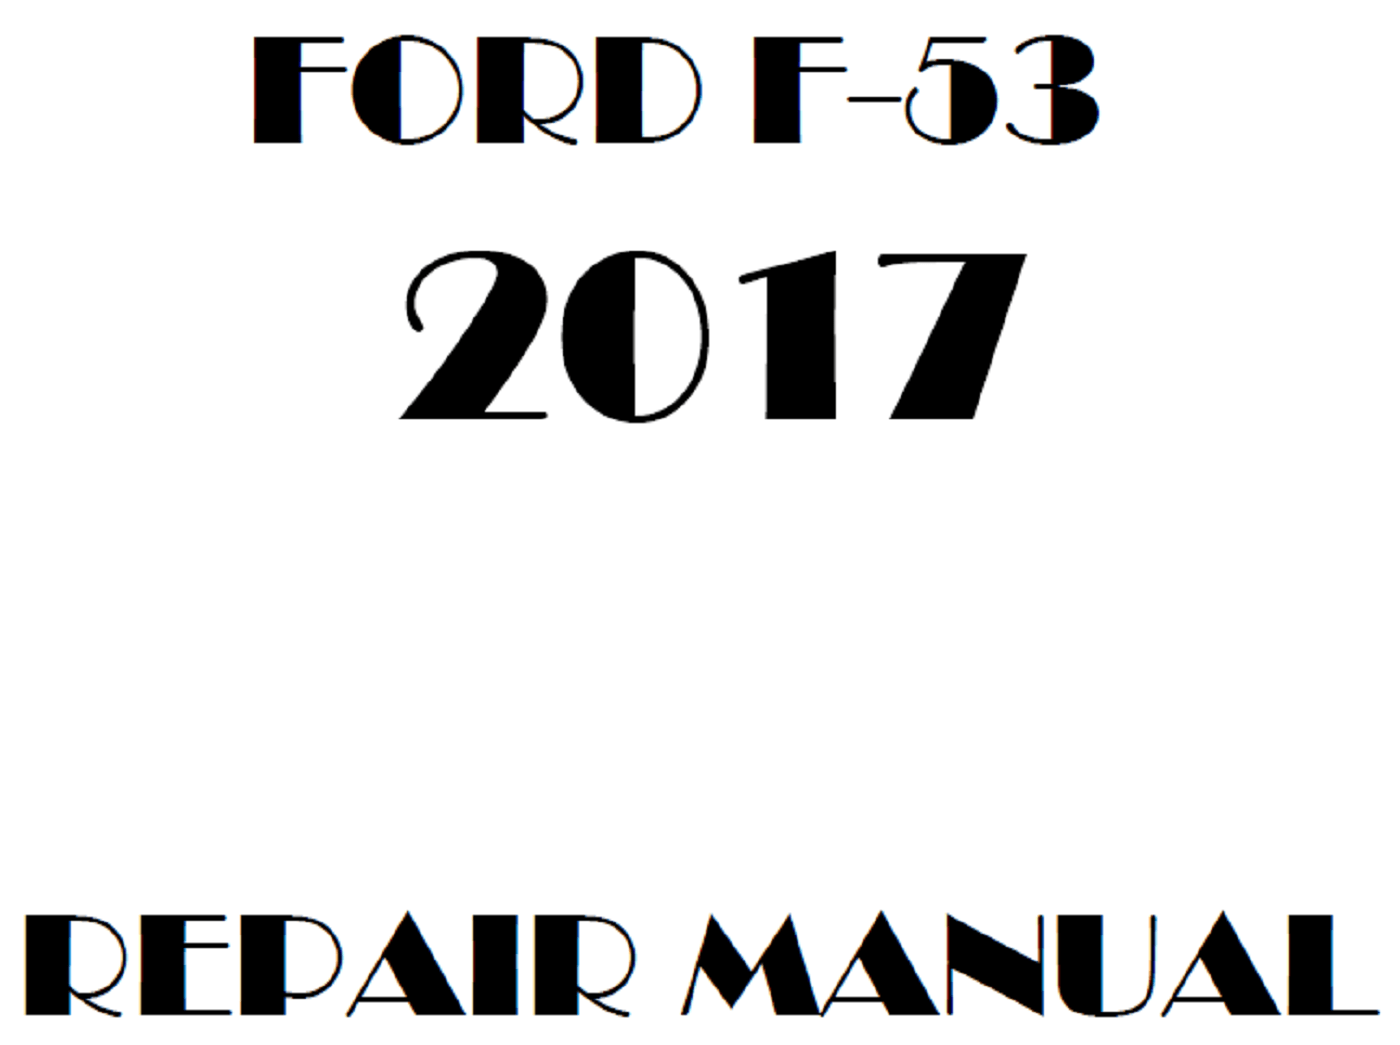 2017 Ford F53 repair manual